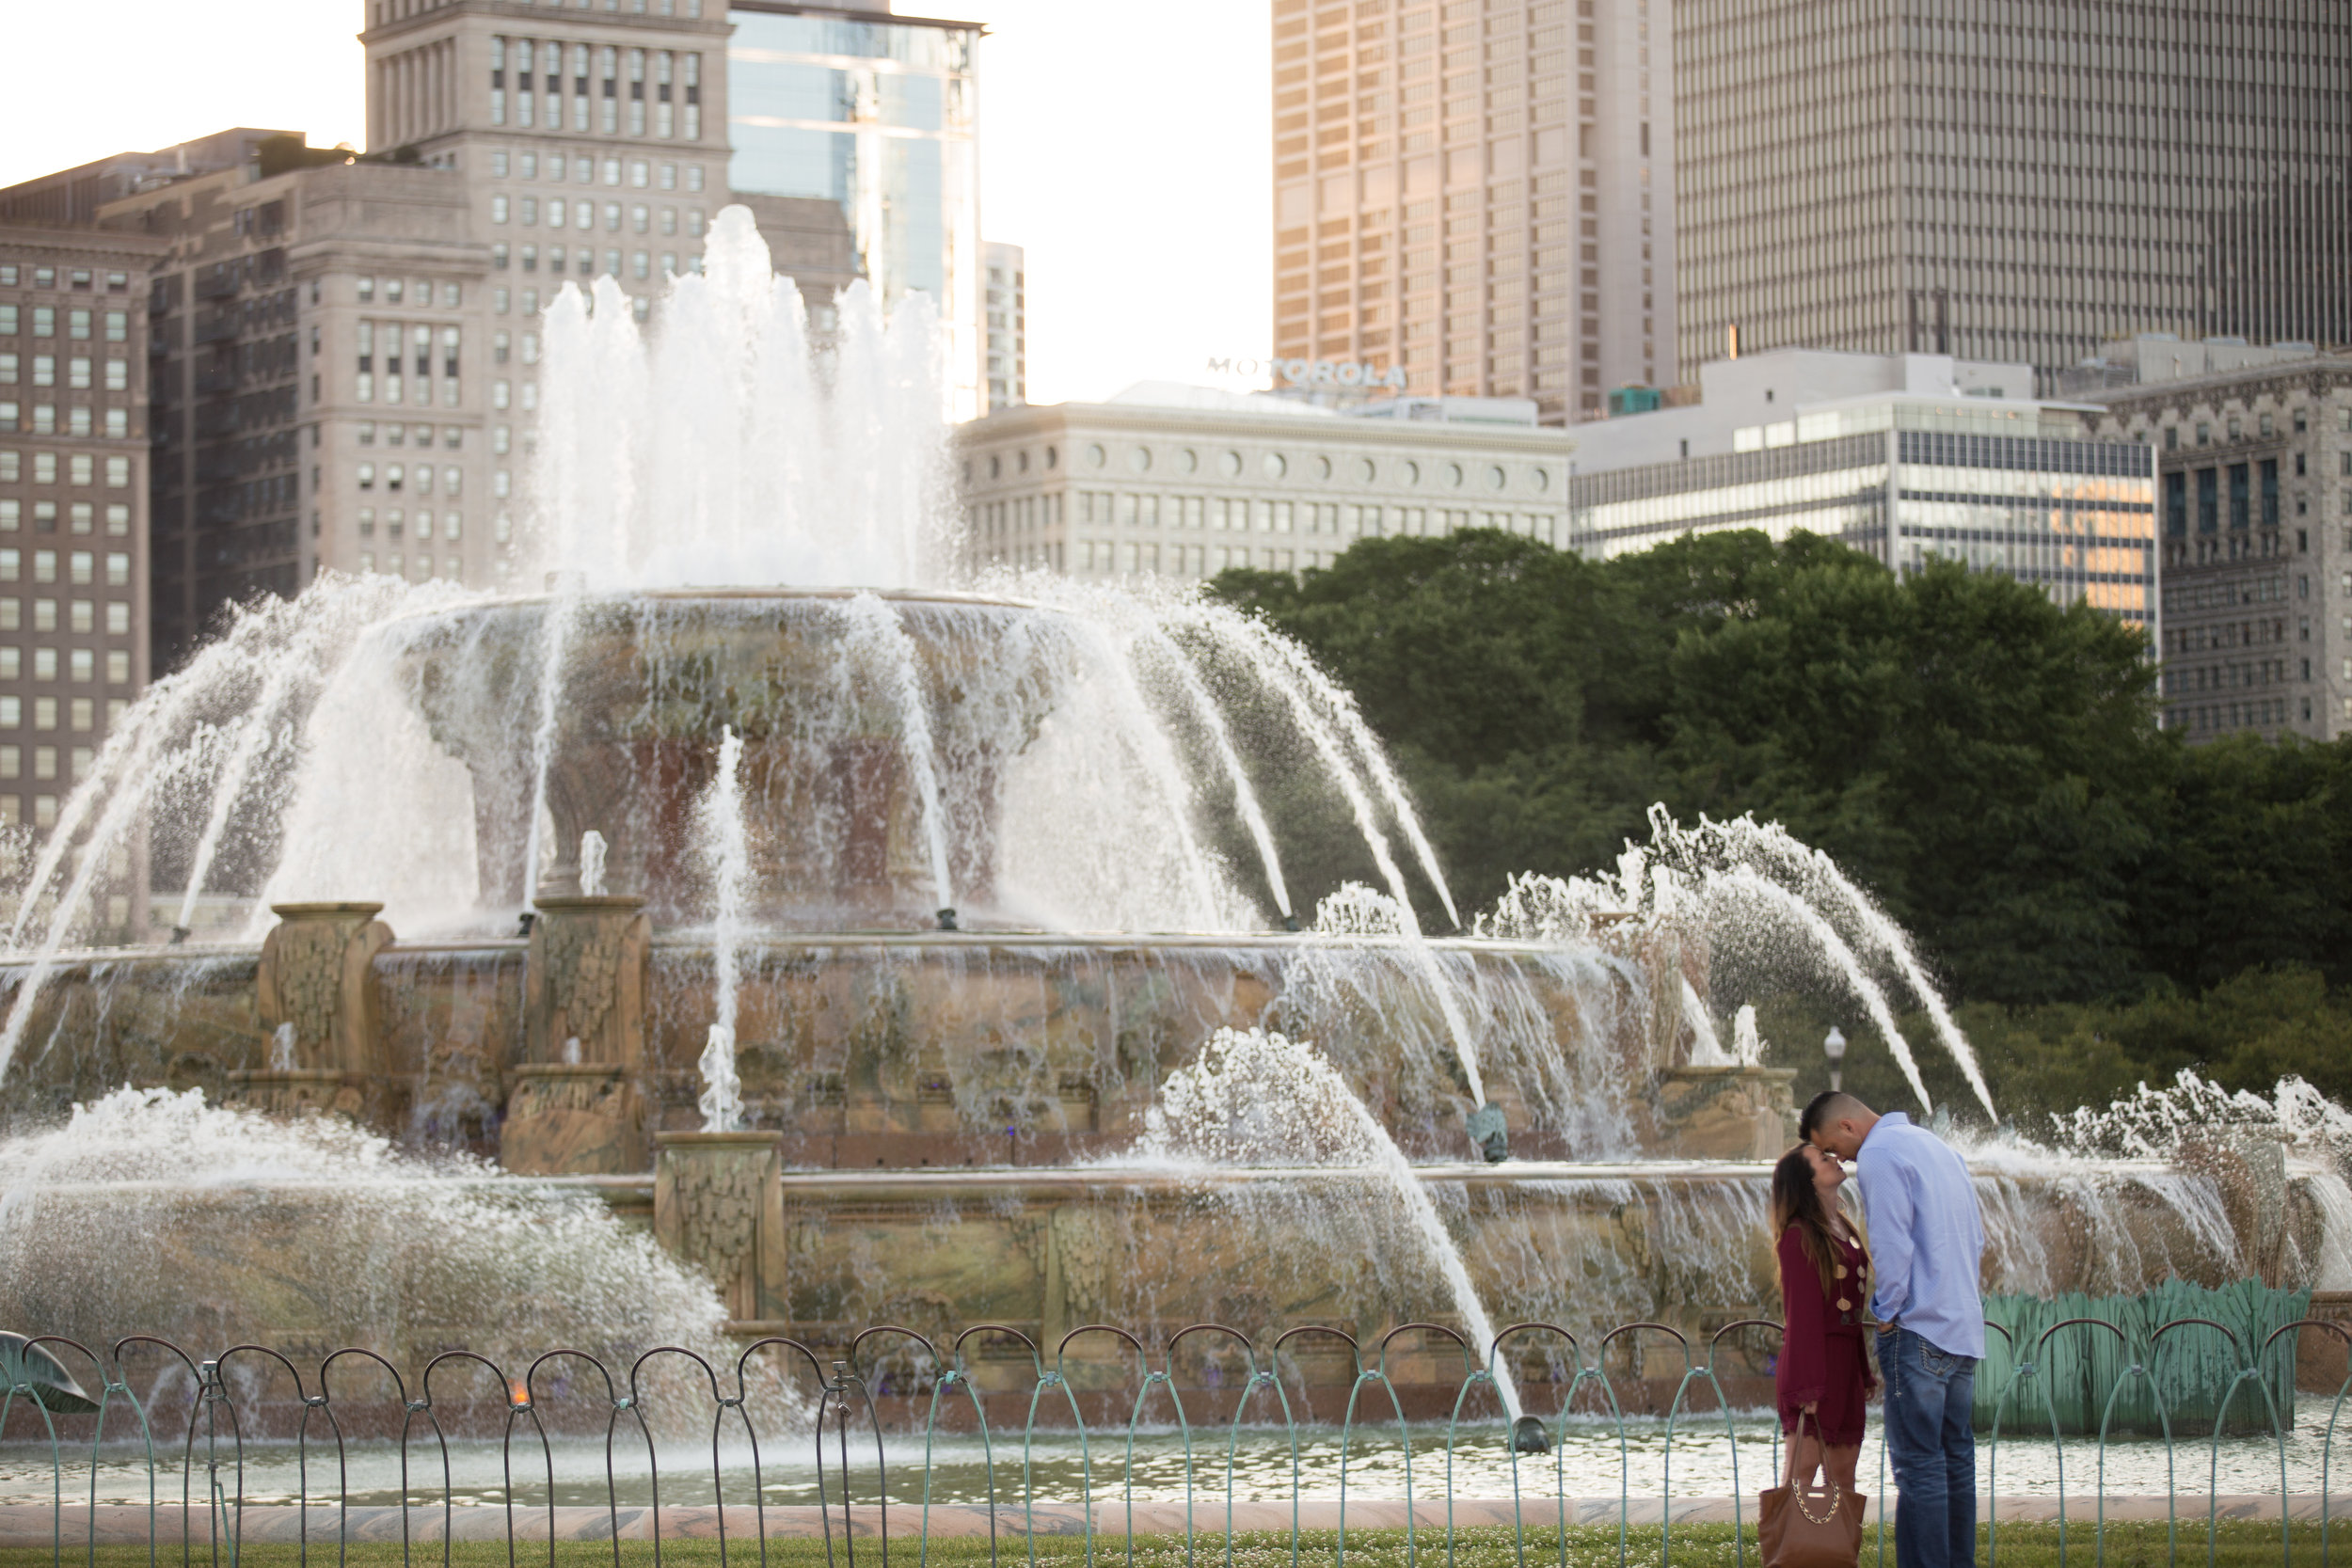 Chris asked to pray with me in front of the Buckingham Fountain before he knelt down and asked me to marry him.